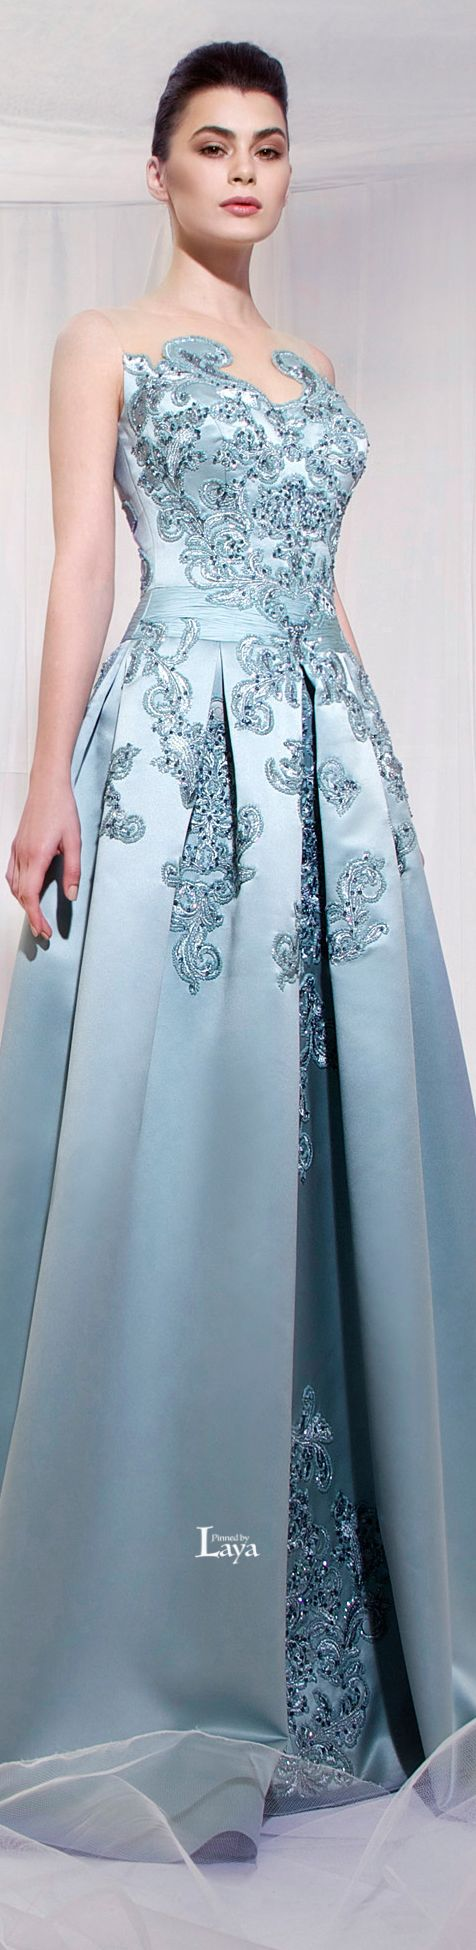 The best images about royal on pinterest baroque marchesa and